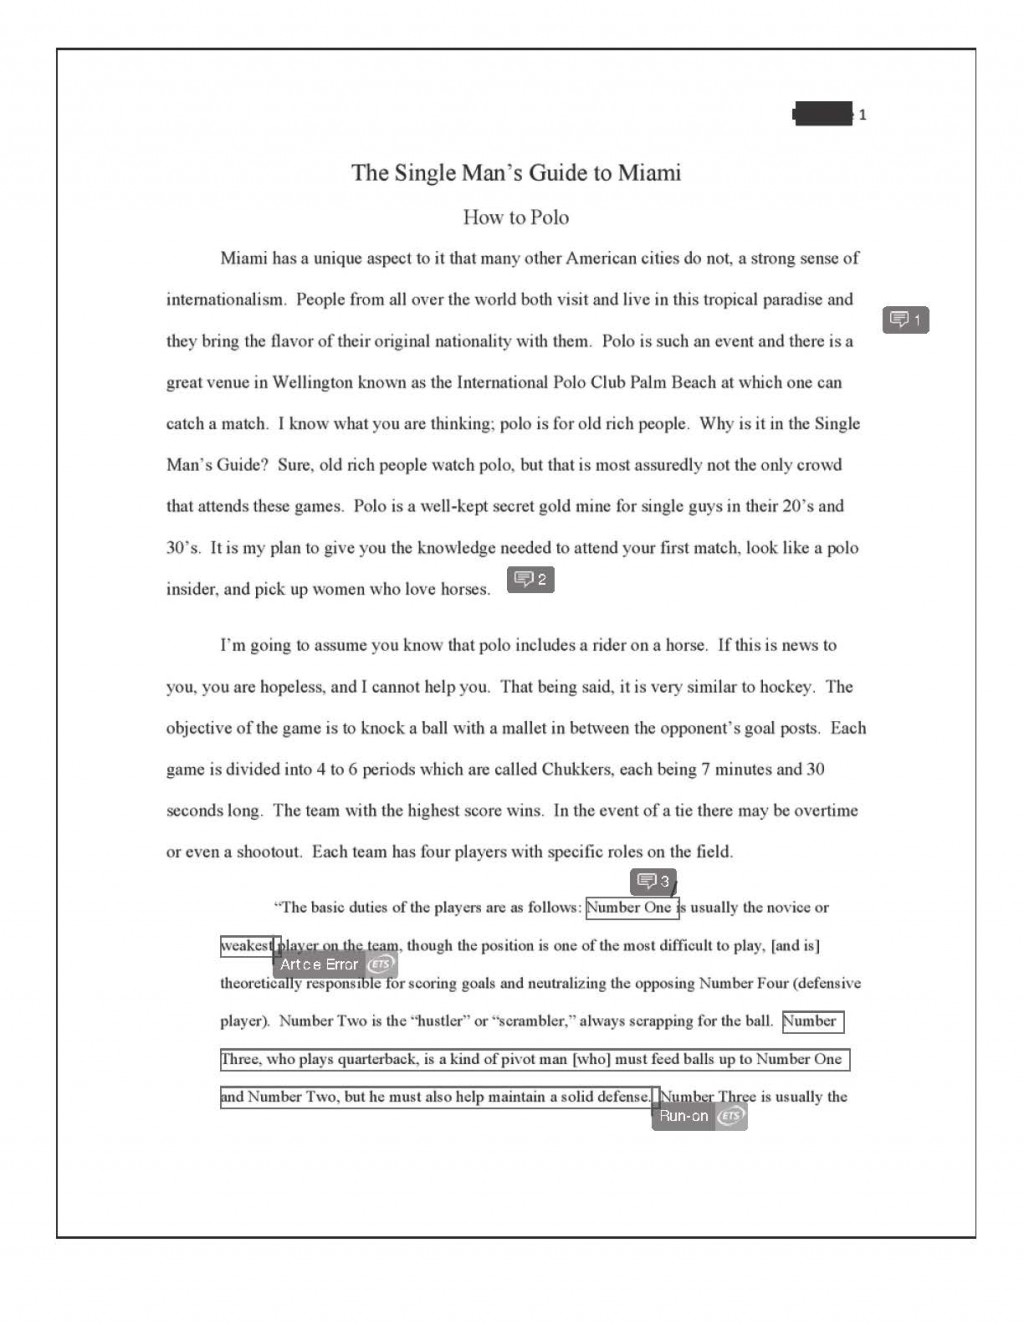 009 Informative Essay Final How To Polo Redacted Page Fresh Short Example Stirring Of About Love Pdf Large